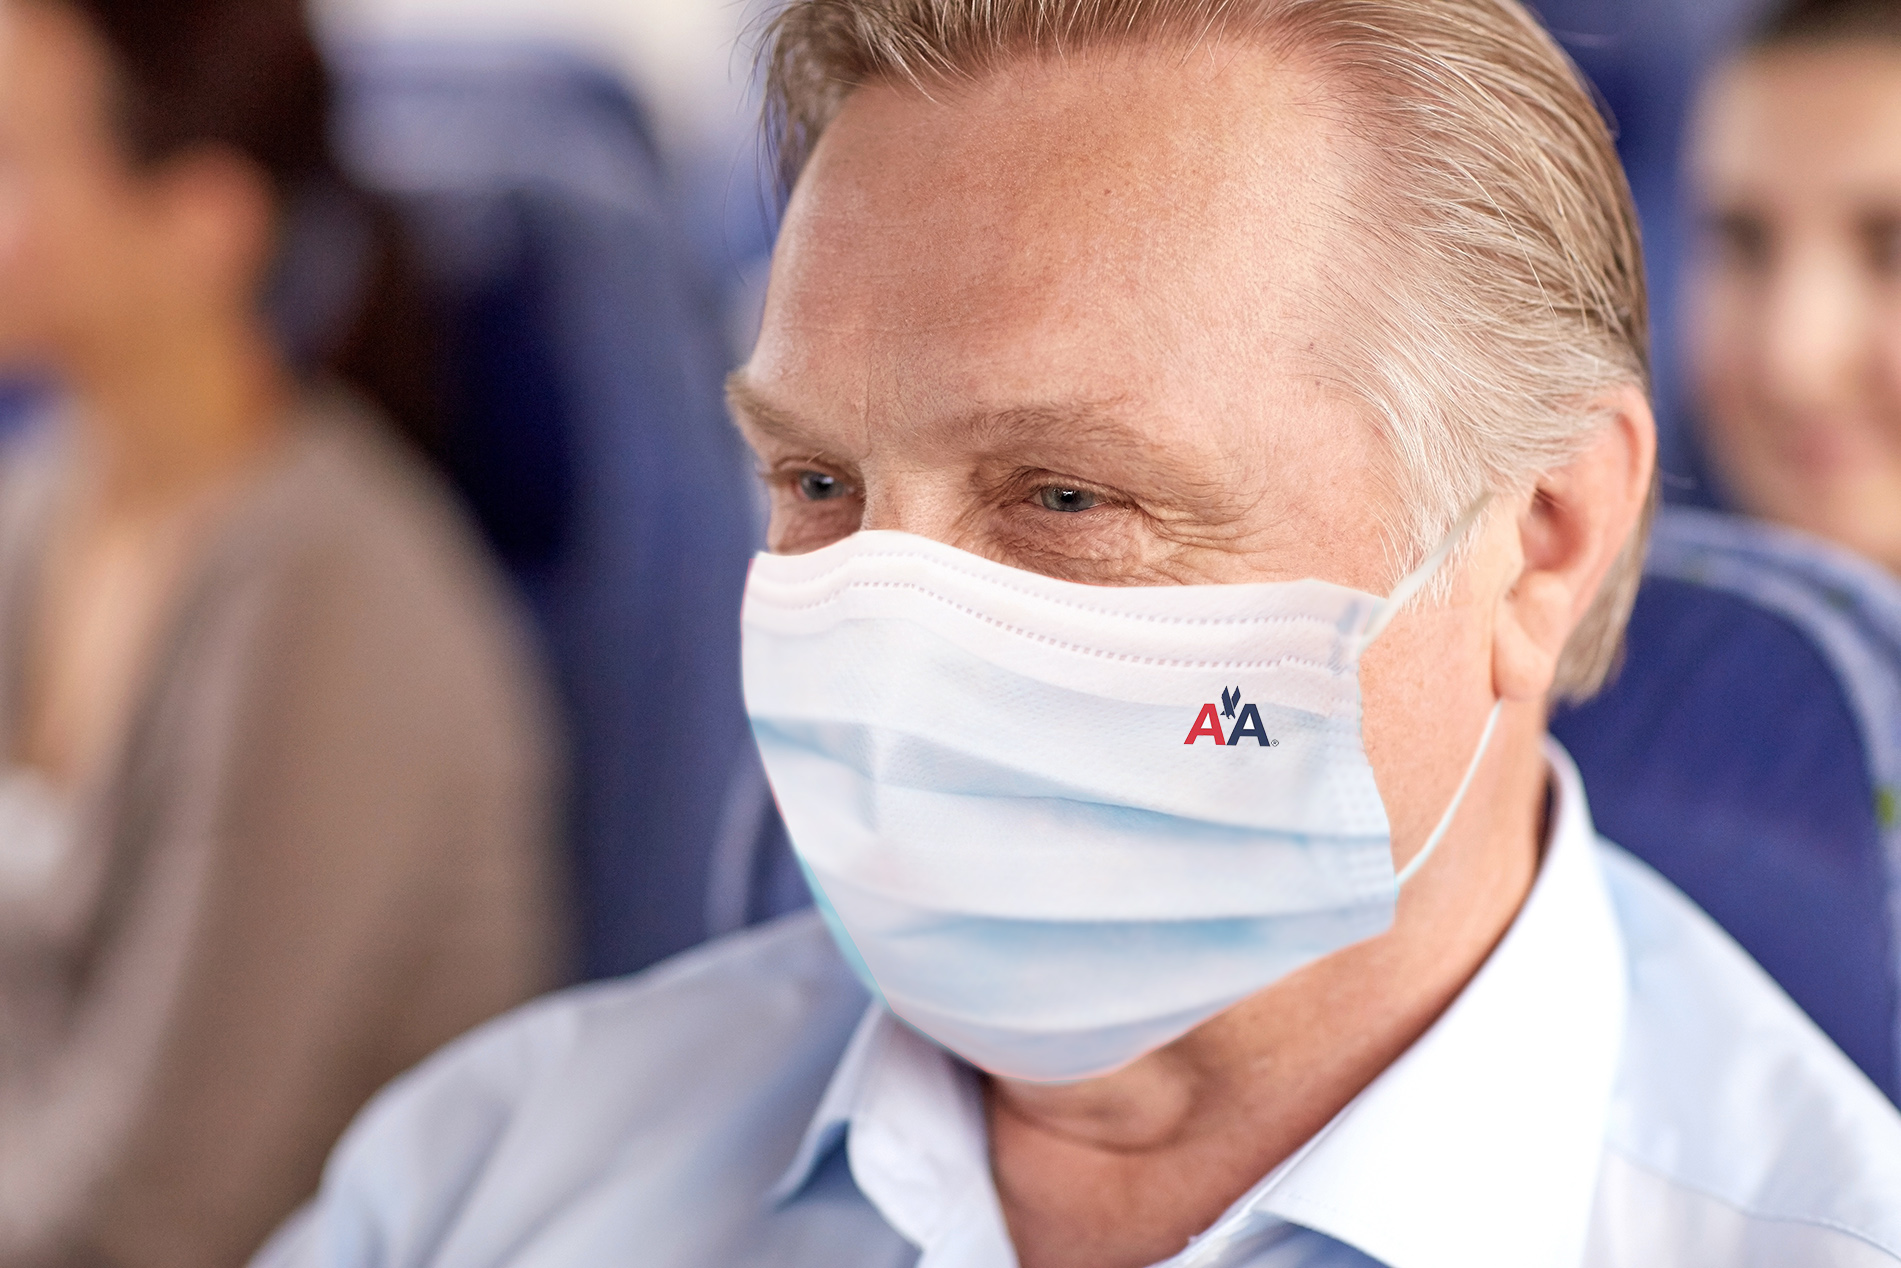 surgical-masks-usa-israel-covid-19-virus-pandemic-mask-custom-logo-printing-corporate-airlines-business-manufacturing